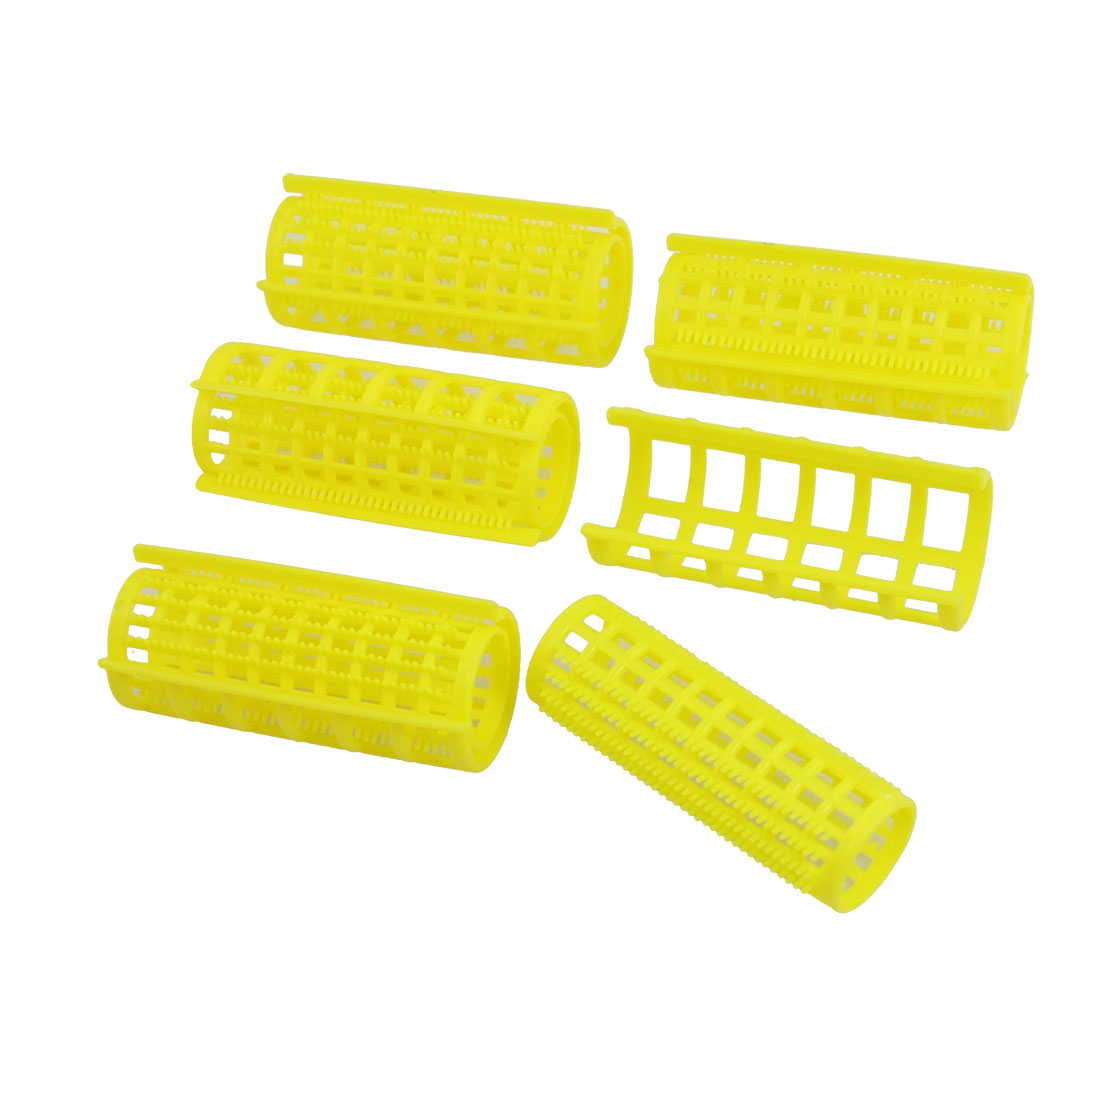 5 Pcs DIY Curler Hairdressing Plastic Hair Curling Roller Tool Yellow